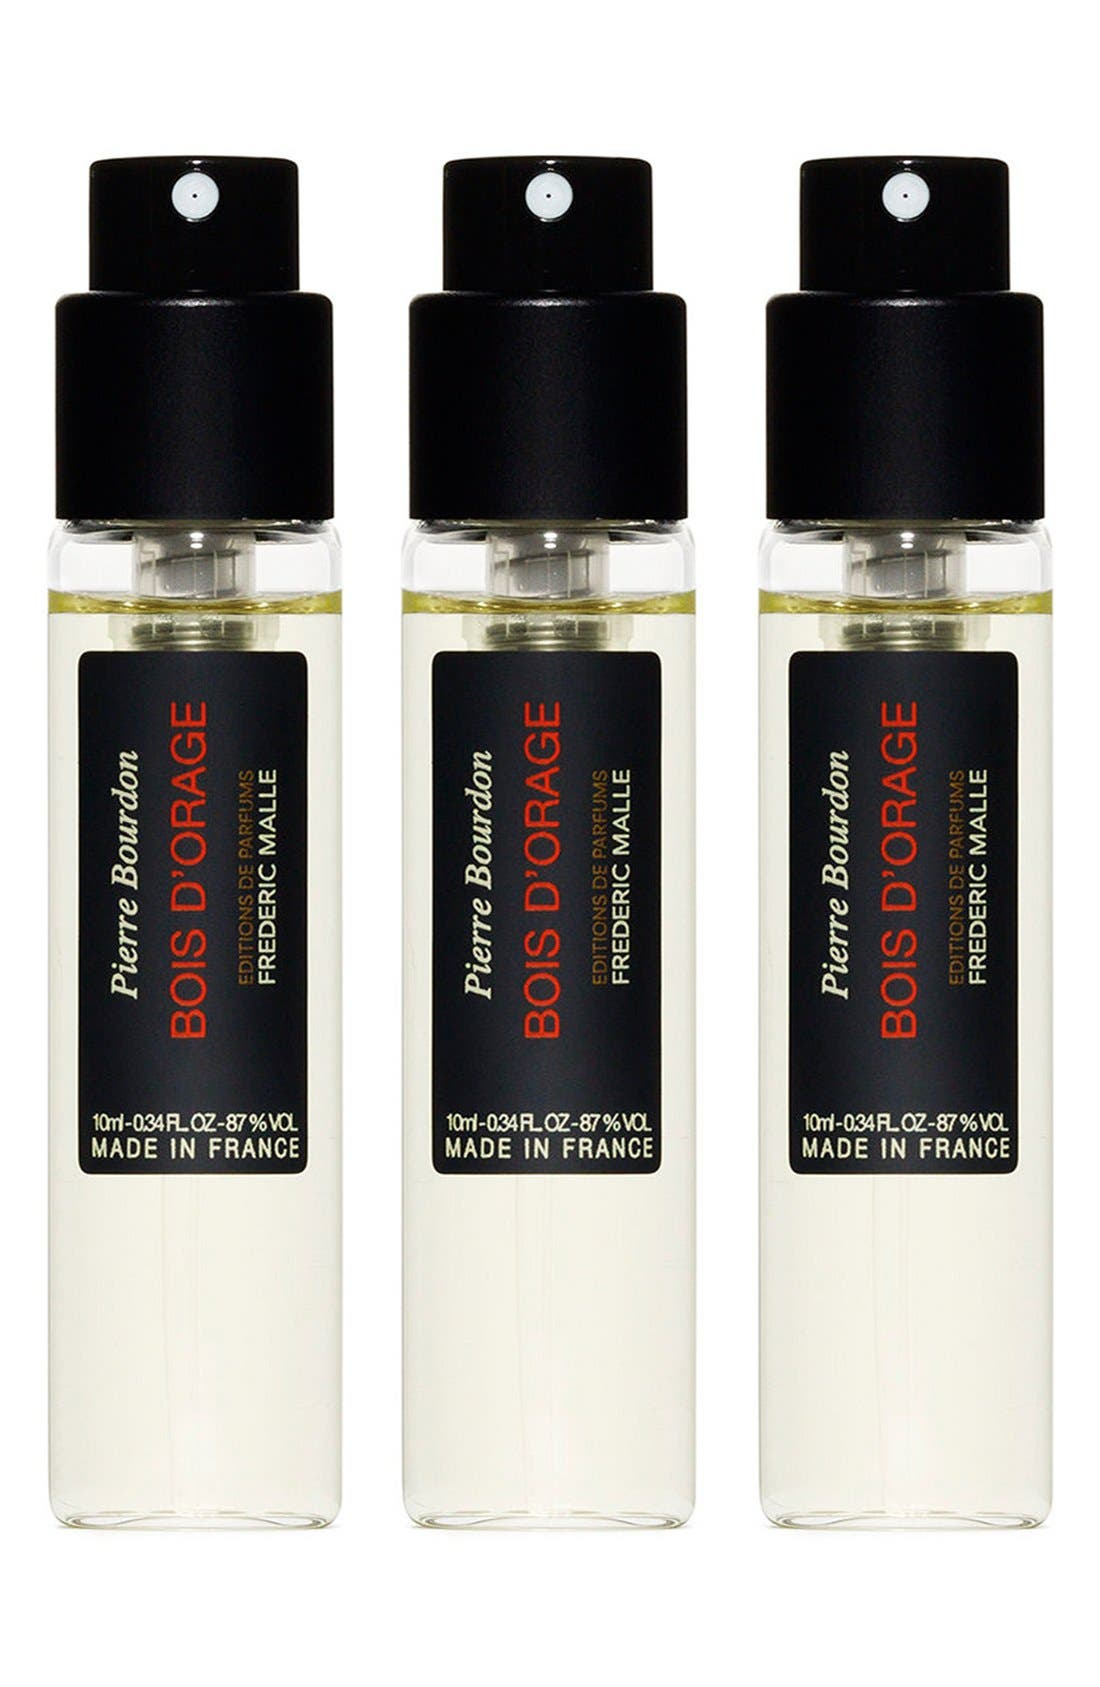 Editions de Parfums Frédéric Malle Bois d'Orange Parfum Travel Spray Trio